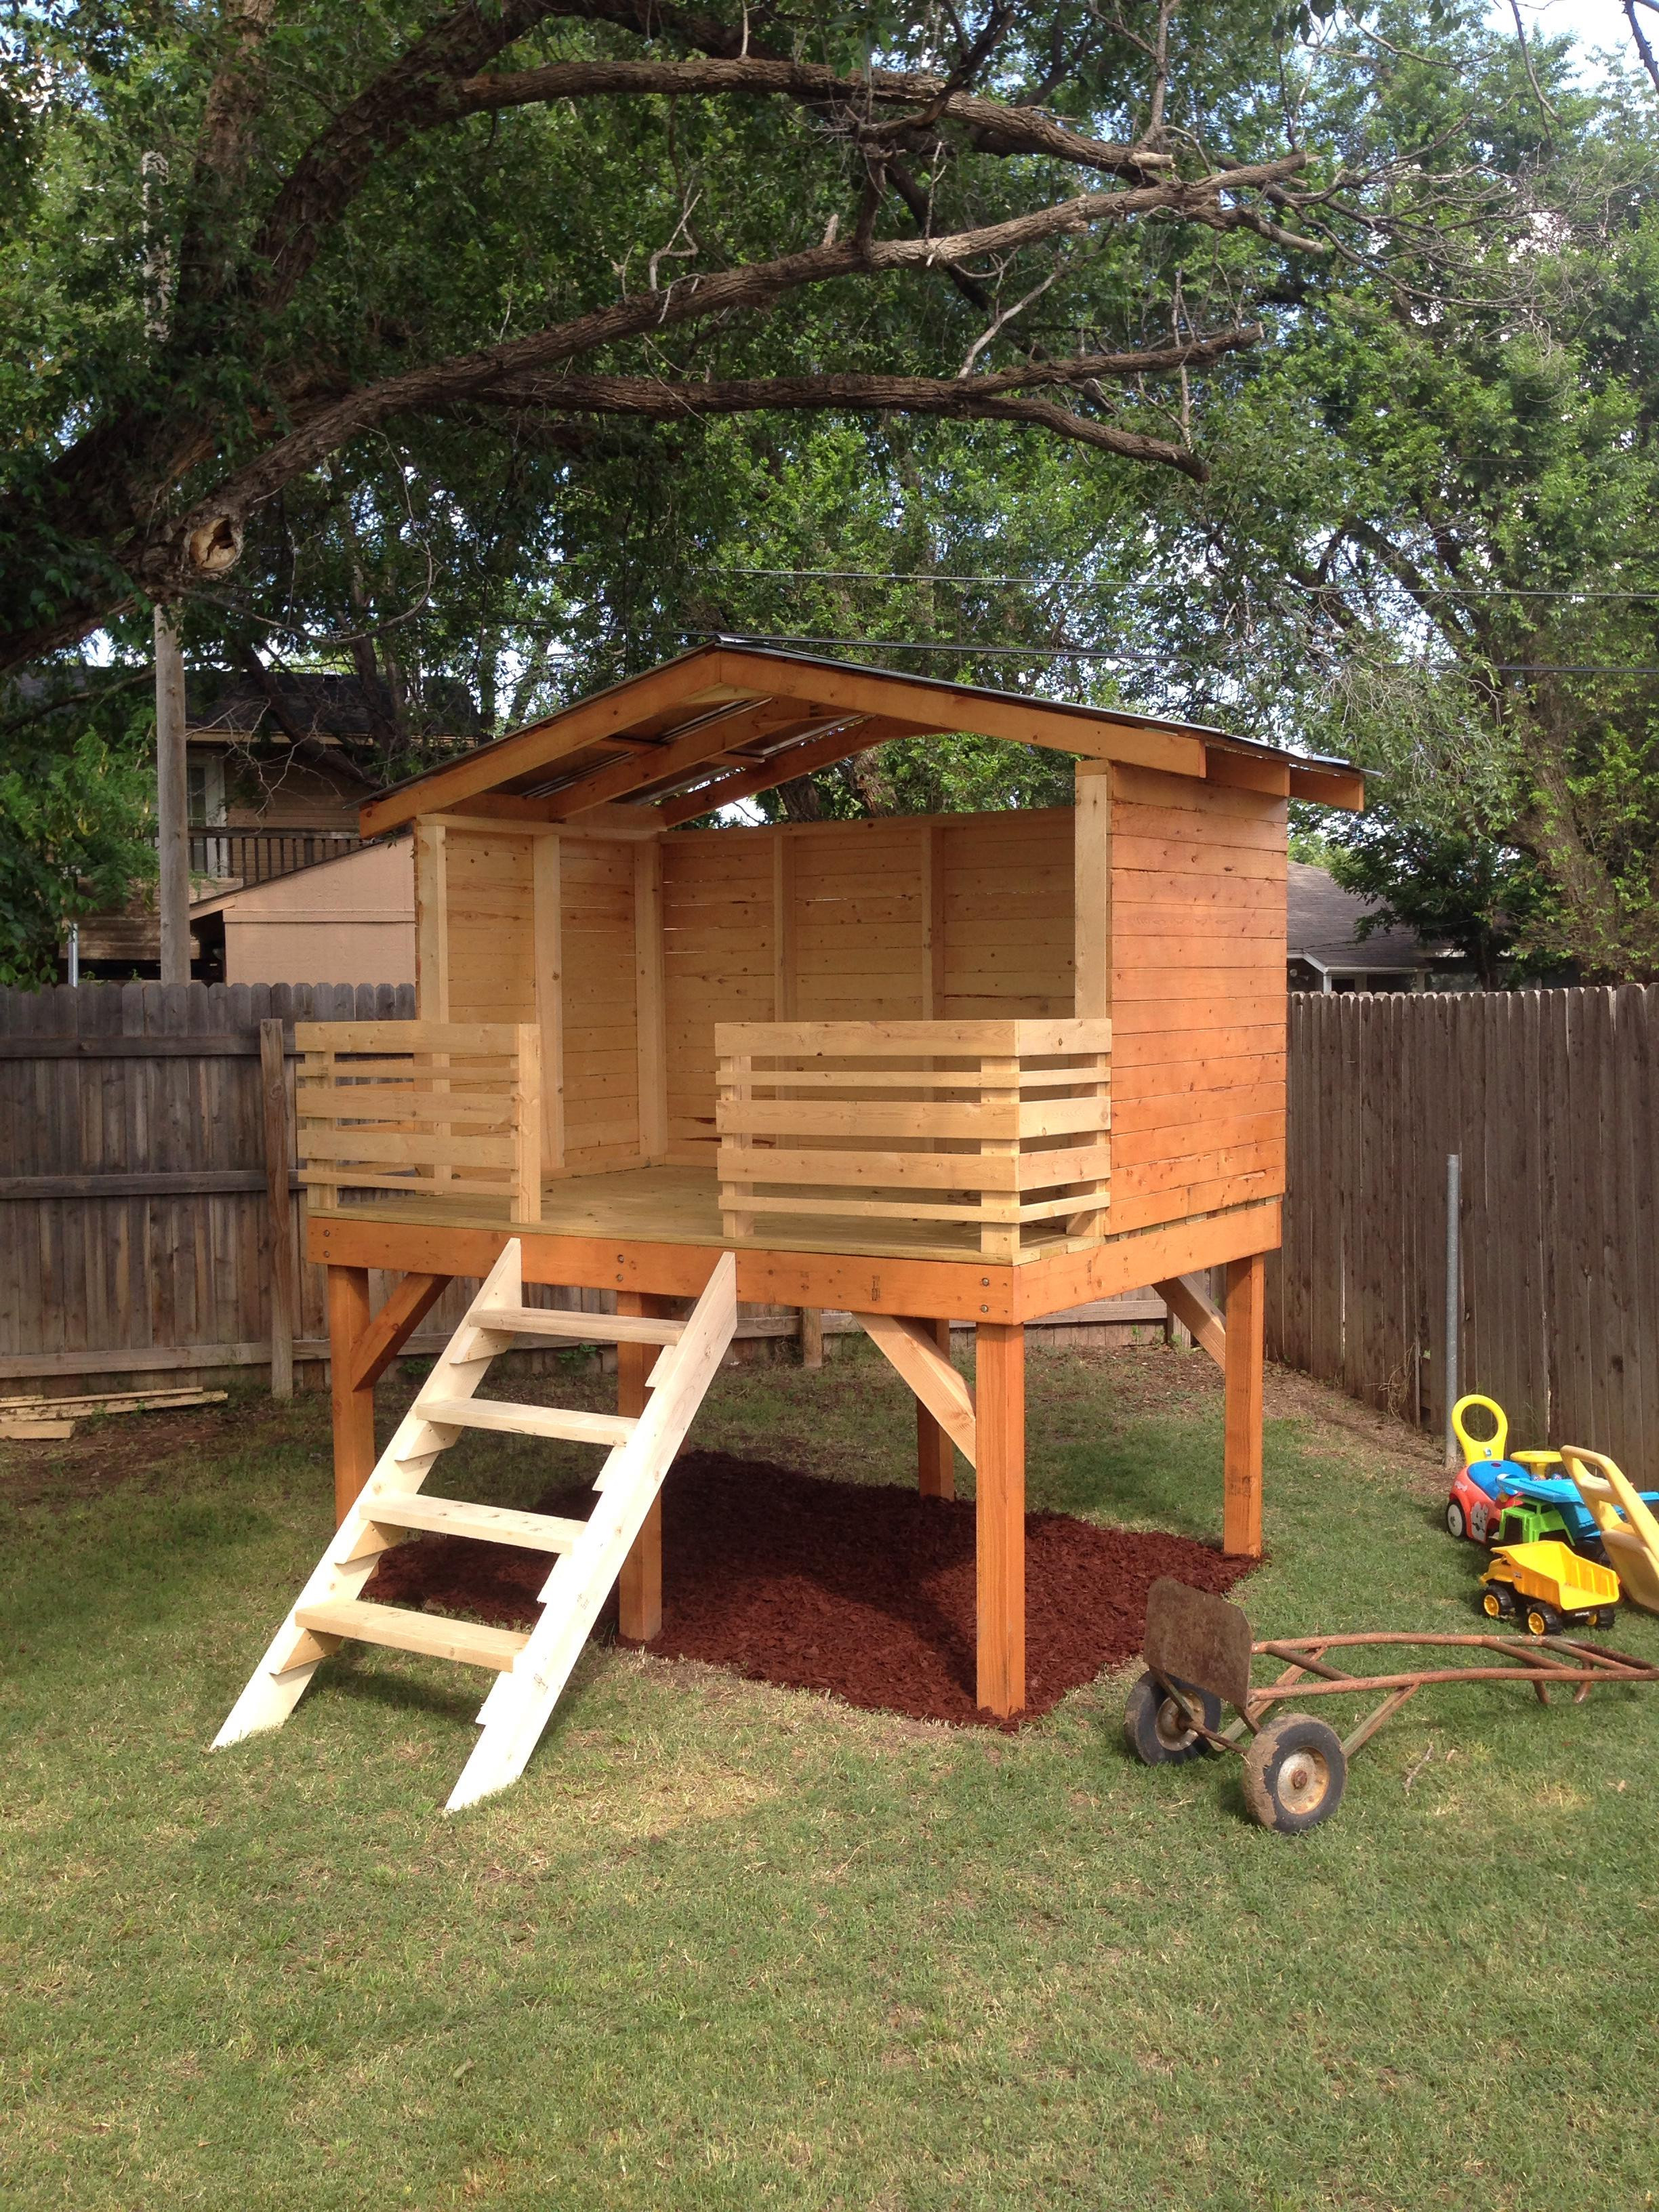 Best ideas about DIY Kids Forts . Save or Pin Dad Chronicles His DIY Backyard Fort Project Now.